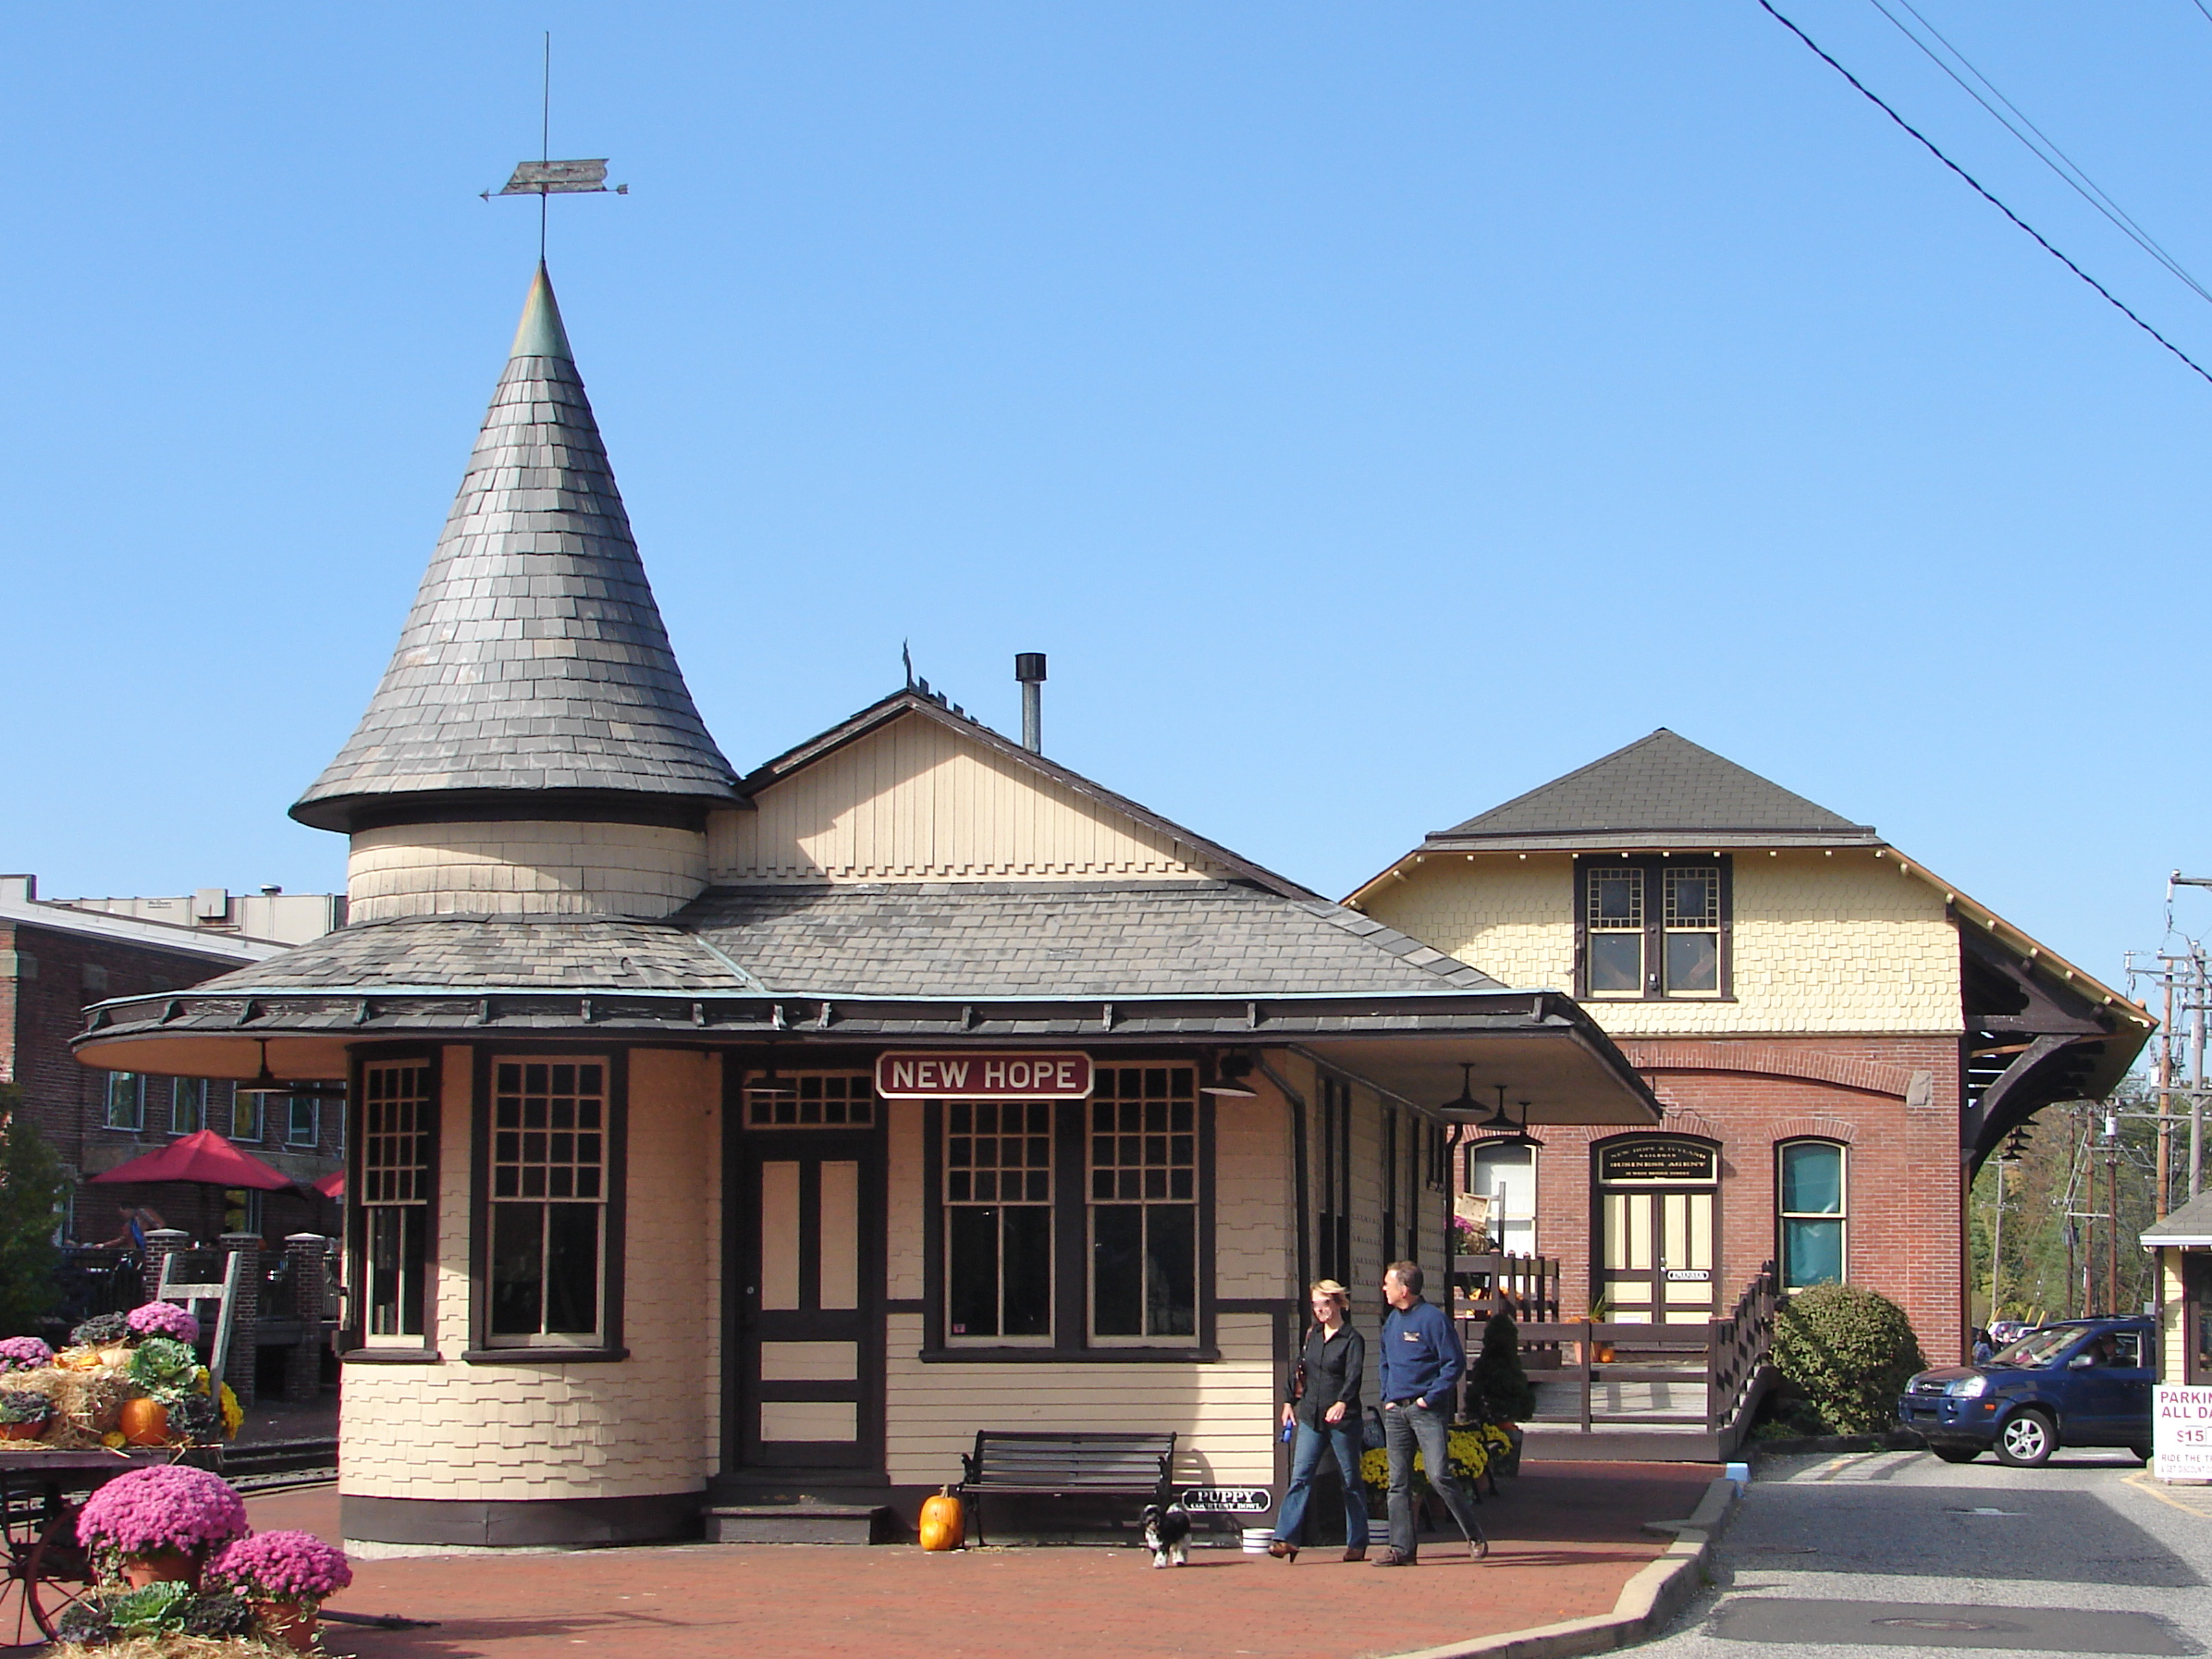 New Hope Station By Smallbones (Own work) [Public domain], via Wikimedia Commons